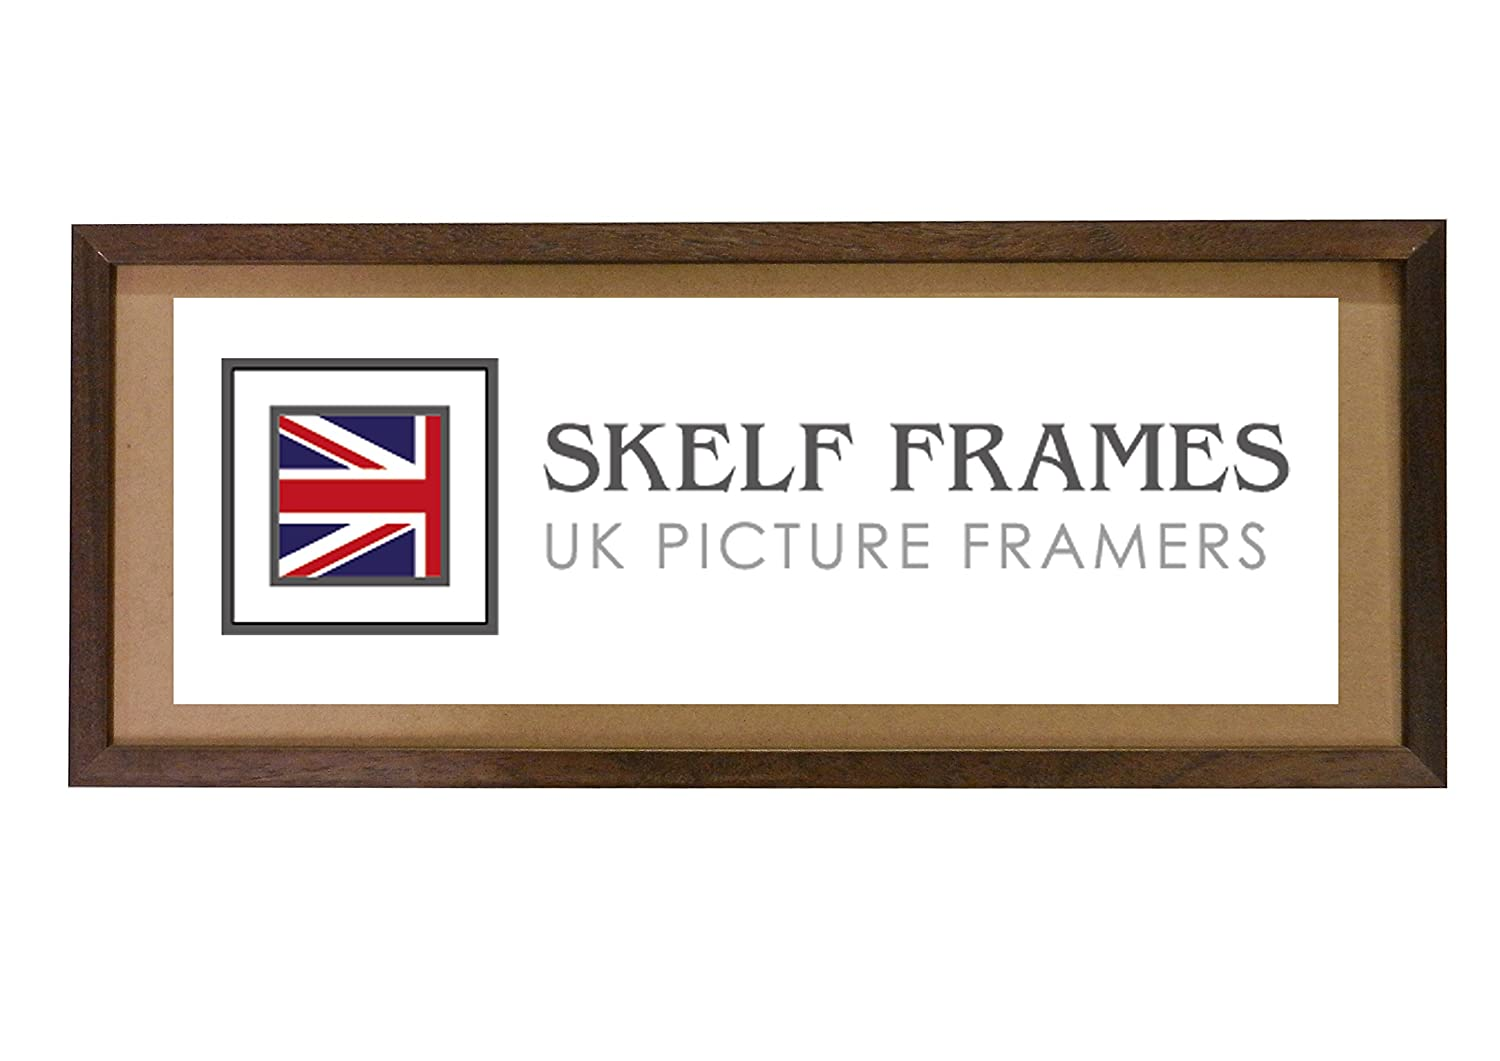 20x12 PANORAMIC PICTURE PHOTO POSTER WOOD FRAME (Phoenix Dark Brown) SKELF FRAMES LTD